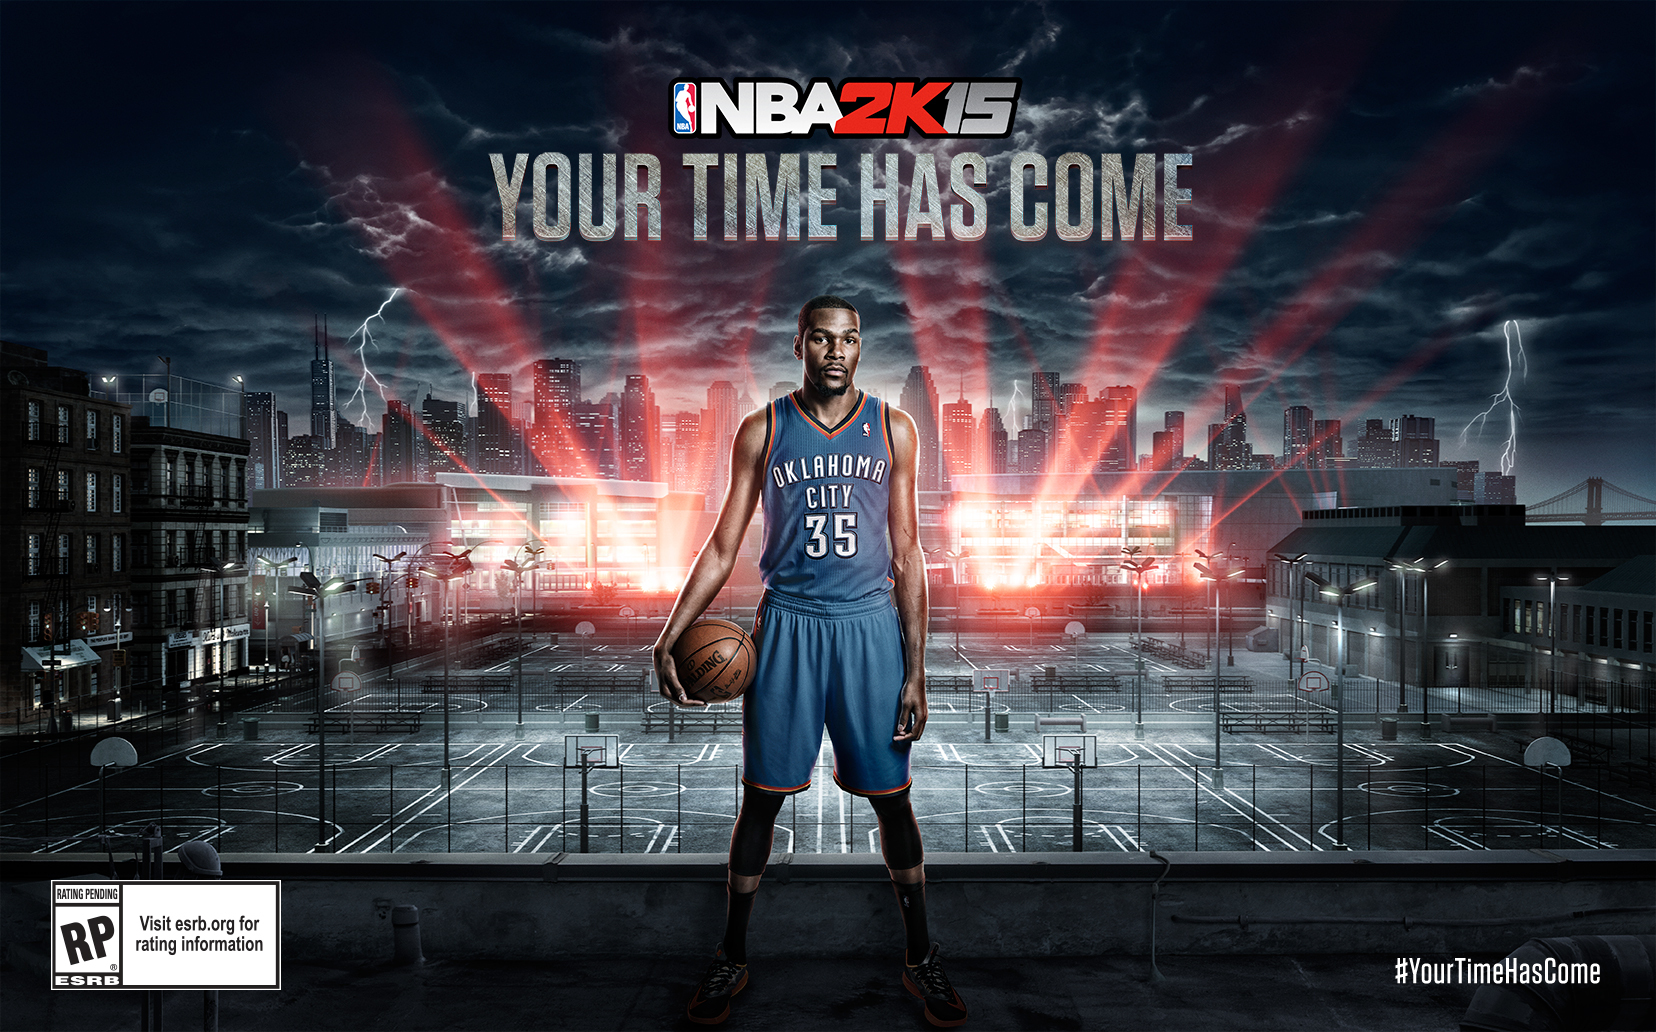 2K today announced that Oklahoma City Thunder superstar, four-time NBA scoring champion, and recently crowned 2014 NBA Most Valuable Player, Kevin Durant, will make his solo debut as video game cover athlete on NBA(R) 2K15, the next installment of the top-selling and top-rated NBA video game simulation franchise*. With the selection, Durant completes a banner year in which he garnered the NBA's top award for the first time in his career and fulfilled his lifelong dream of being the feature athlete on an NBA 2K cover, all while cementing his legacy as one of the greatest players of this generation.(photo: Business Wire)